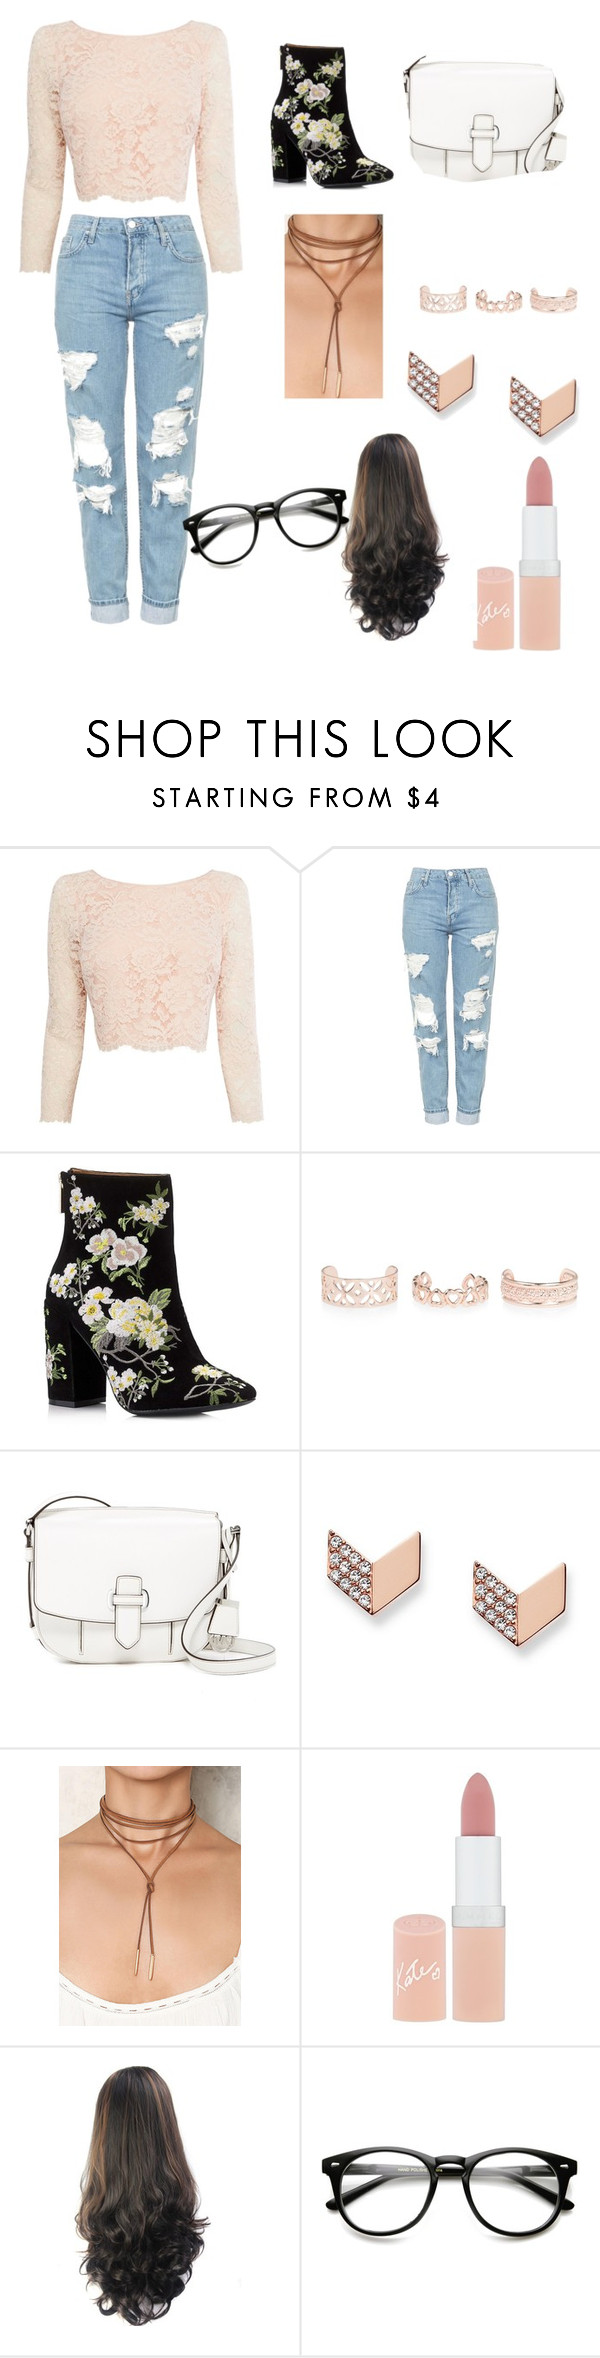 """Untitled #67"" by ldirewolf ❤ liked on Polyvore featuring Coast, Topshop, Miss Selfridge, New Look, MICHAEL Michael Kors, FOSSIL and Rimmel"